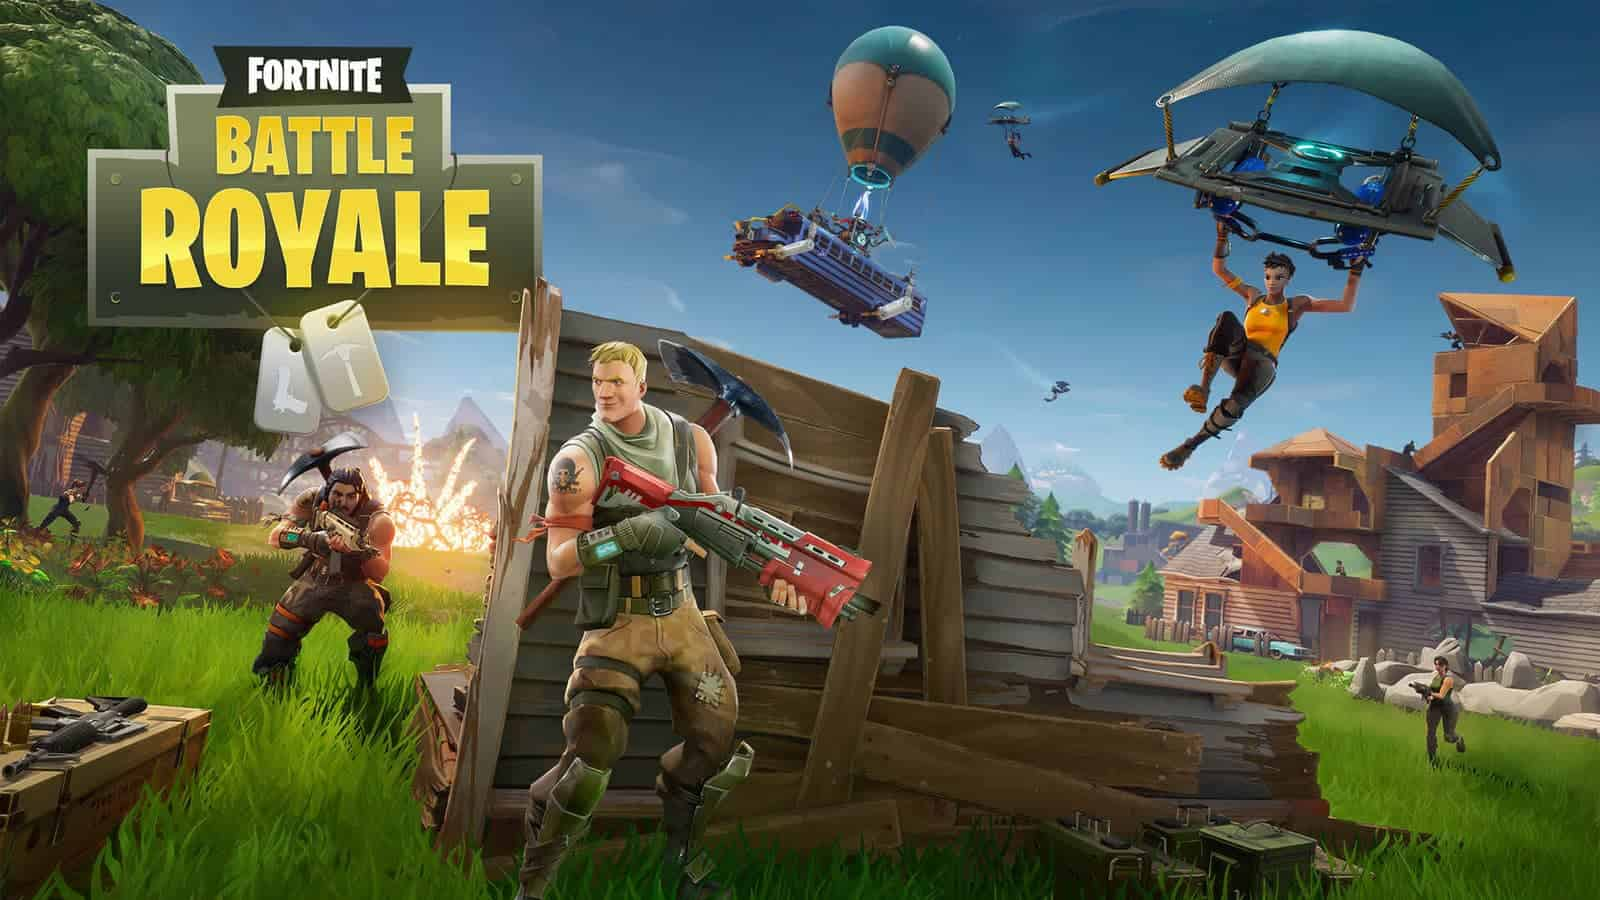 Cuisine Royale Error Fix 6 Fixes For The Easy Anti Cheat Error Code 20006 Solved The